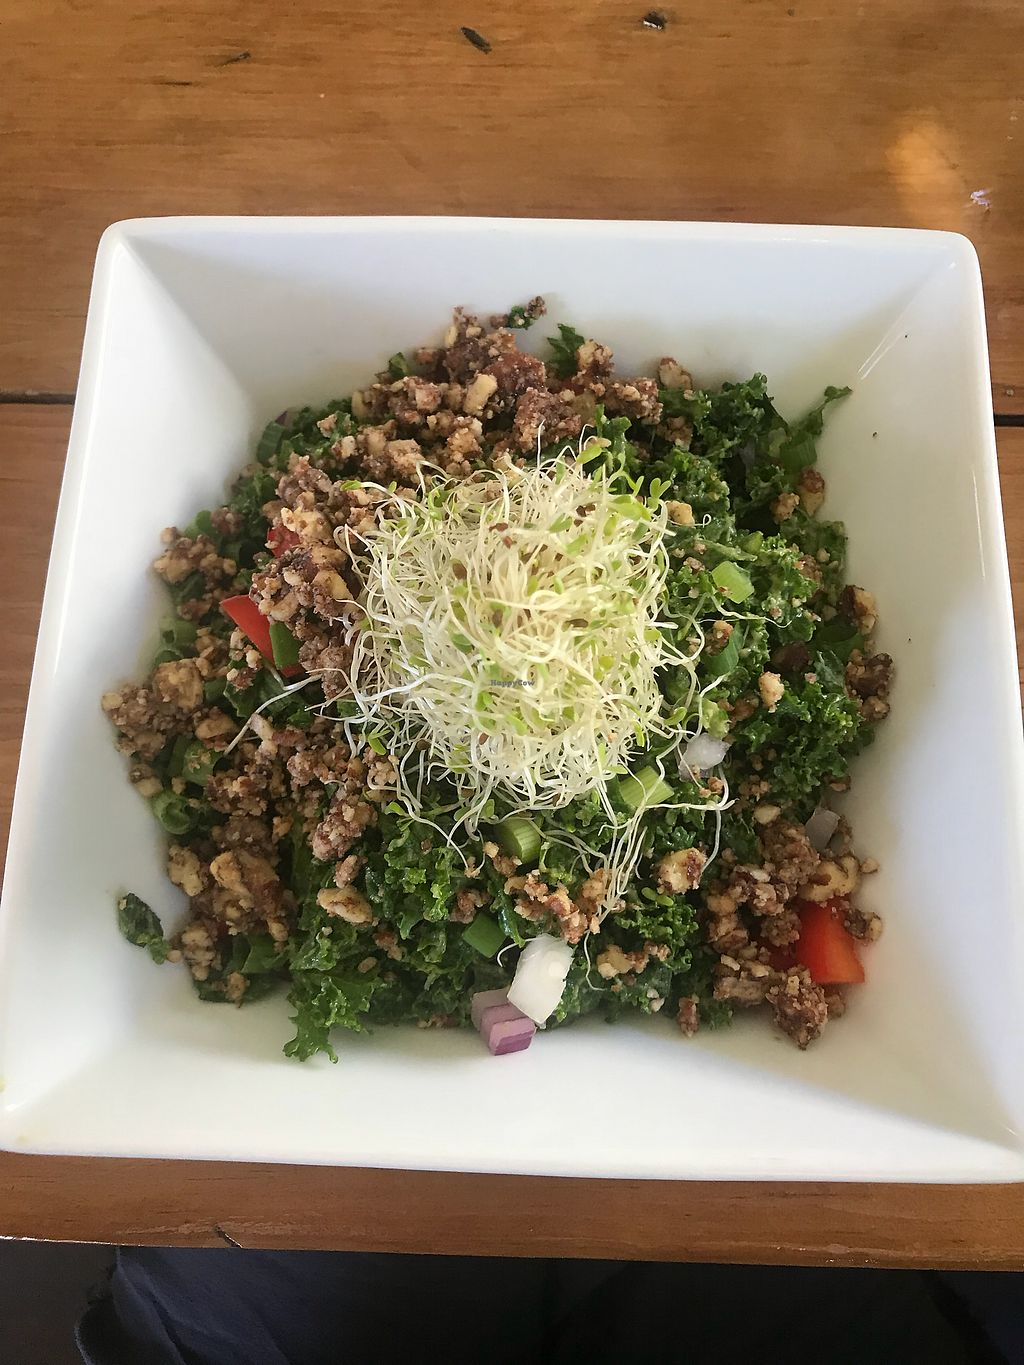 "Photo of The Present Moment Cafe and Market  by <a href=""/members/profile/IndreArbataityte"">IndreArbataityte</a> <br/>Mexican kale salad with pecans <br/> May 27, 2018  - <a href='/contact/abuse/image/9044/405849'>Report</a>"